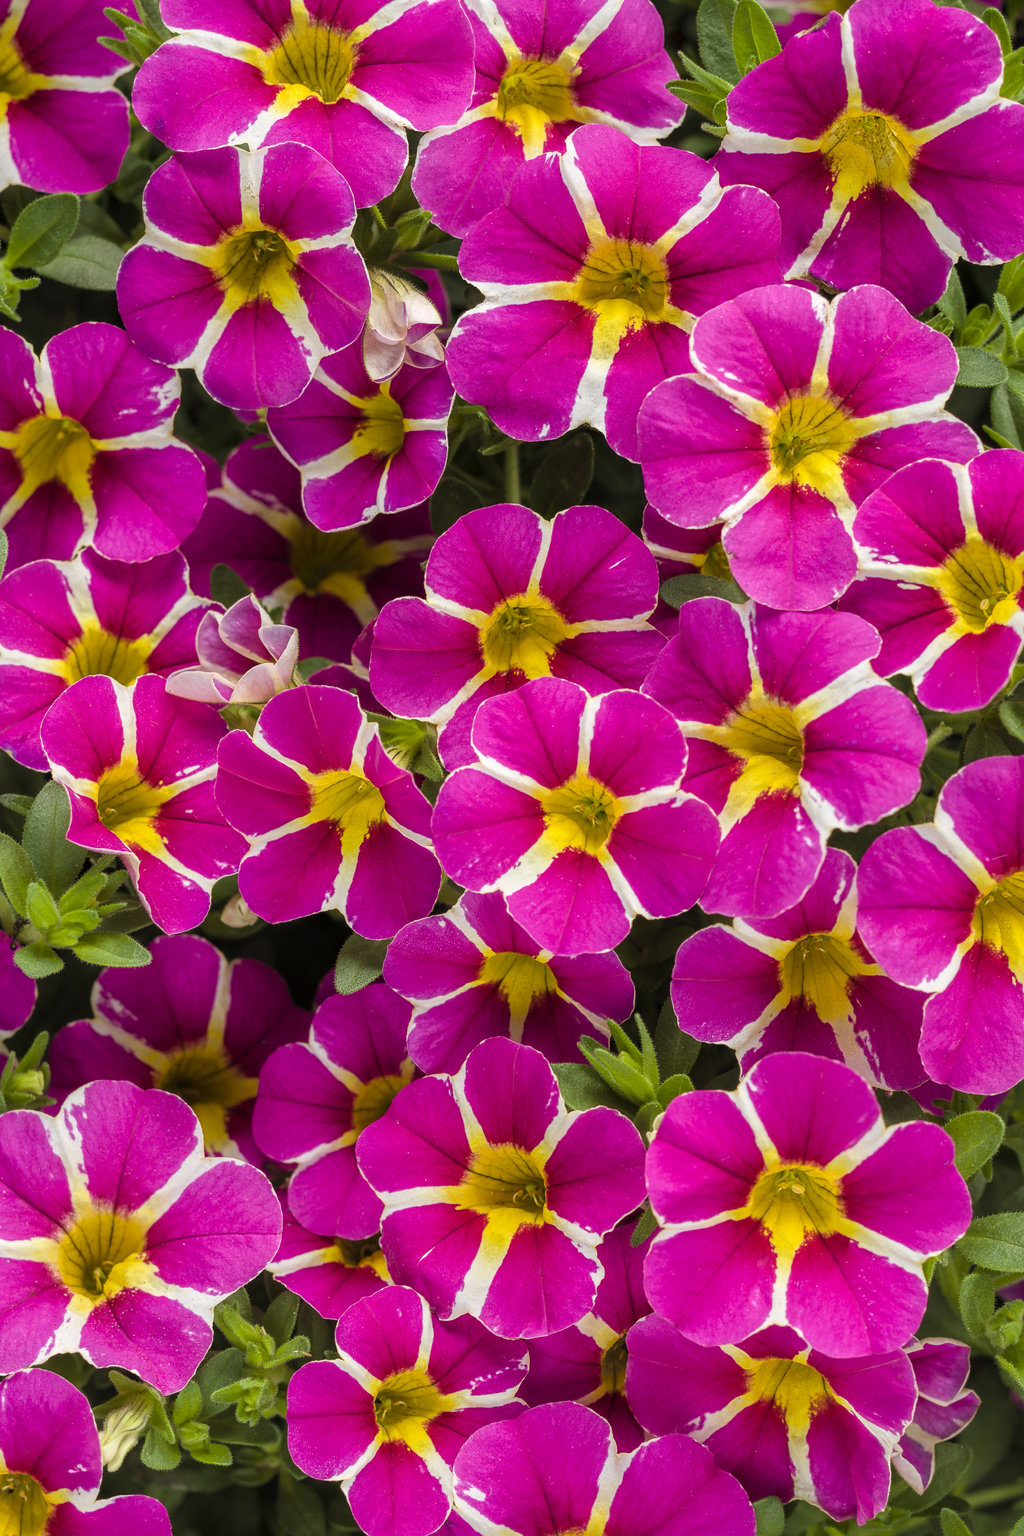 Superbells rising star calibrachoa hybrid proven winners - Calibrachoa superbells ...